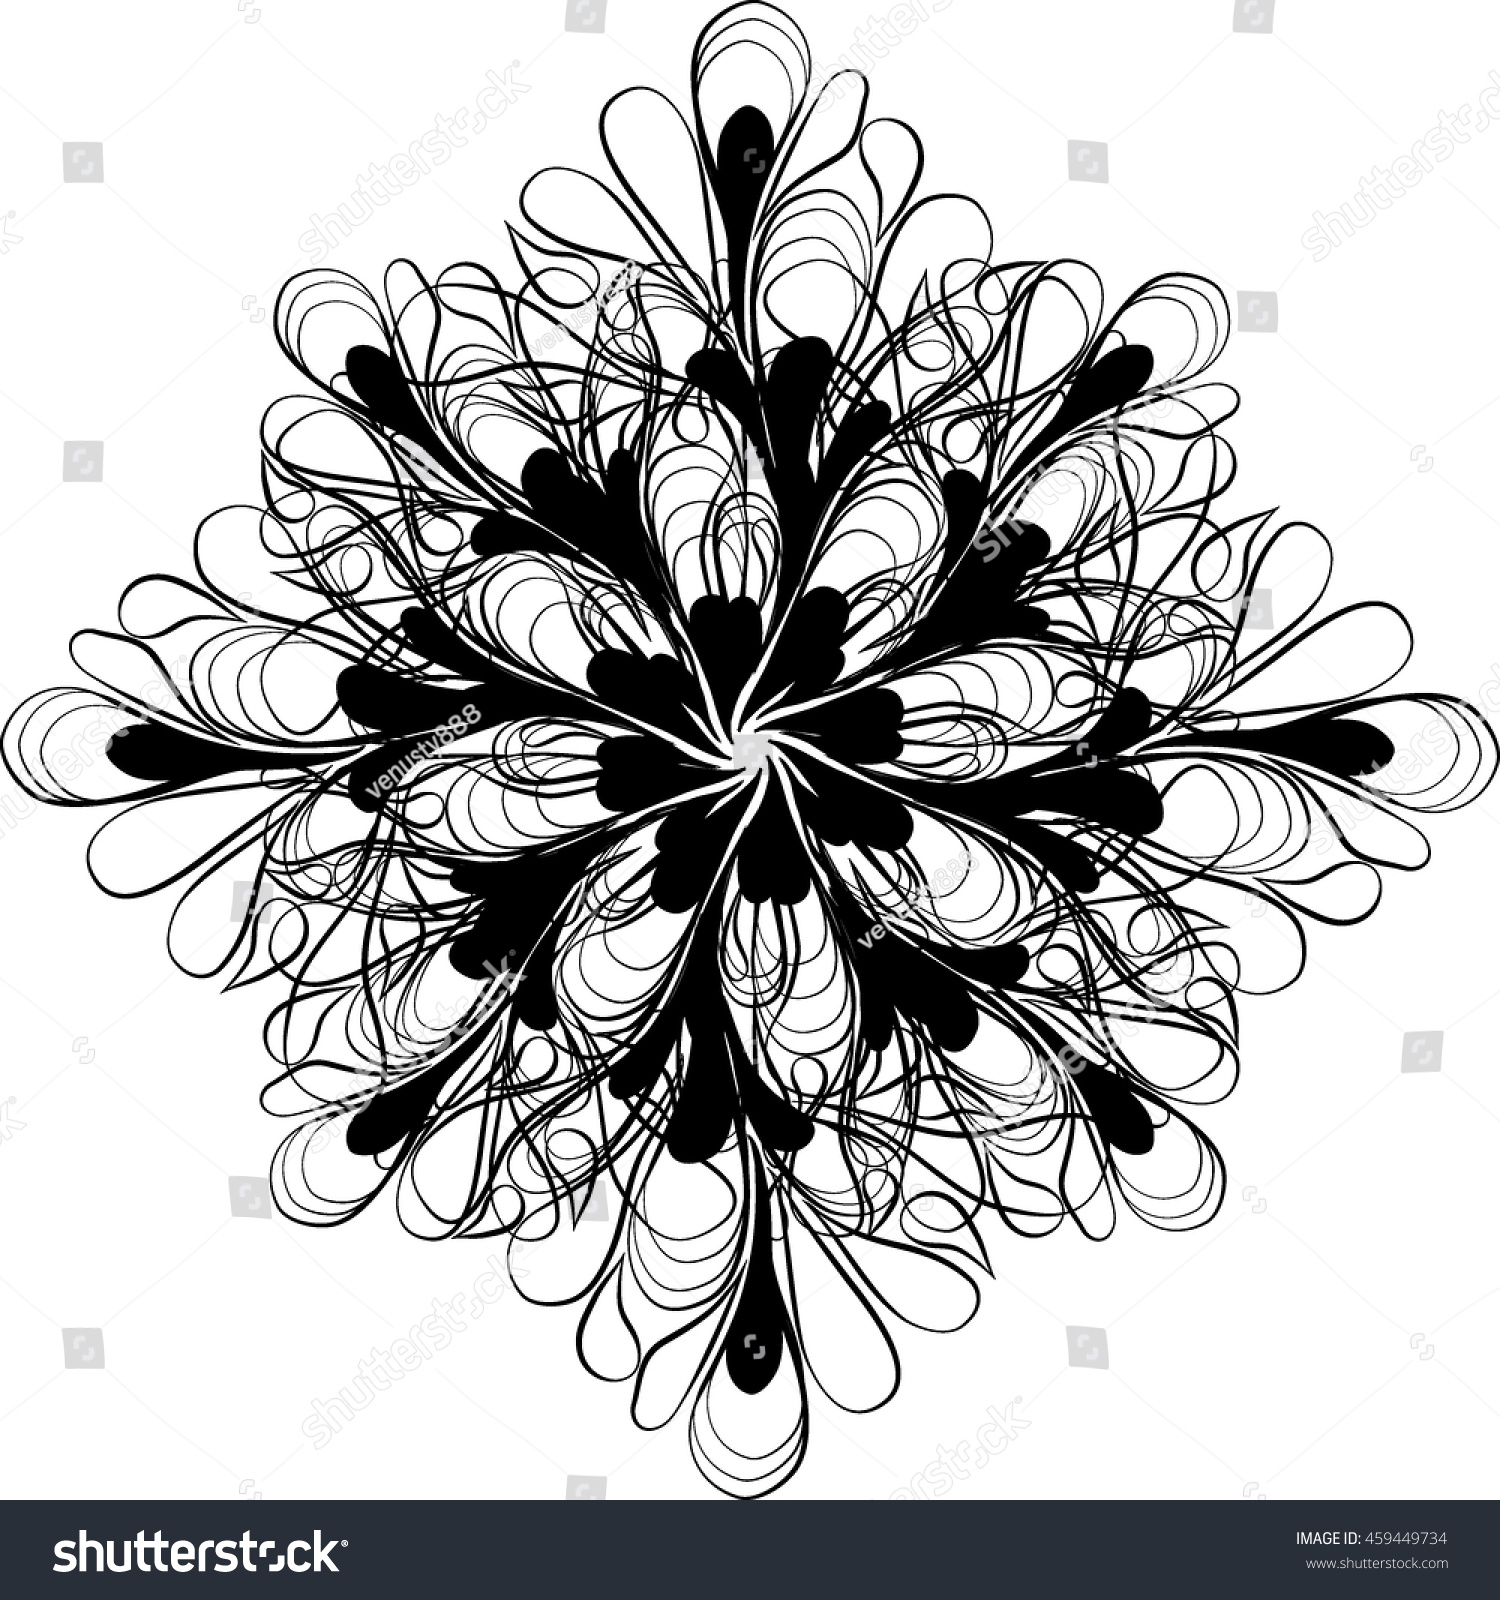 Royalty free vector black and white flowers vector 459449734 vector black and white flowers vector coloring book page for adult doodle floral pattern mightylinksfo